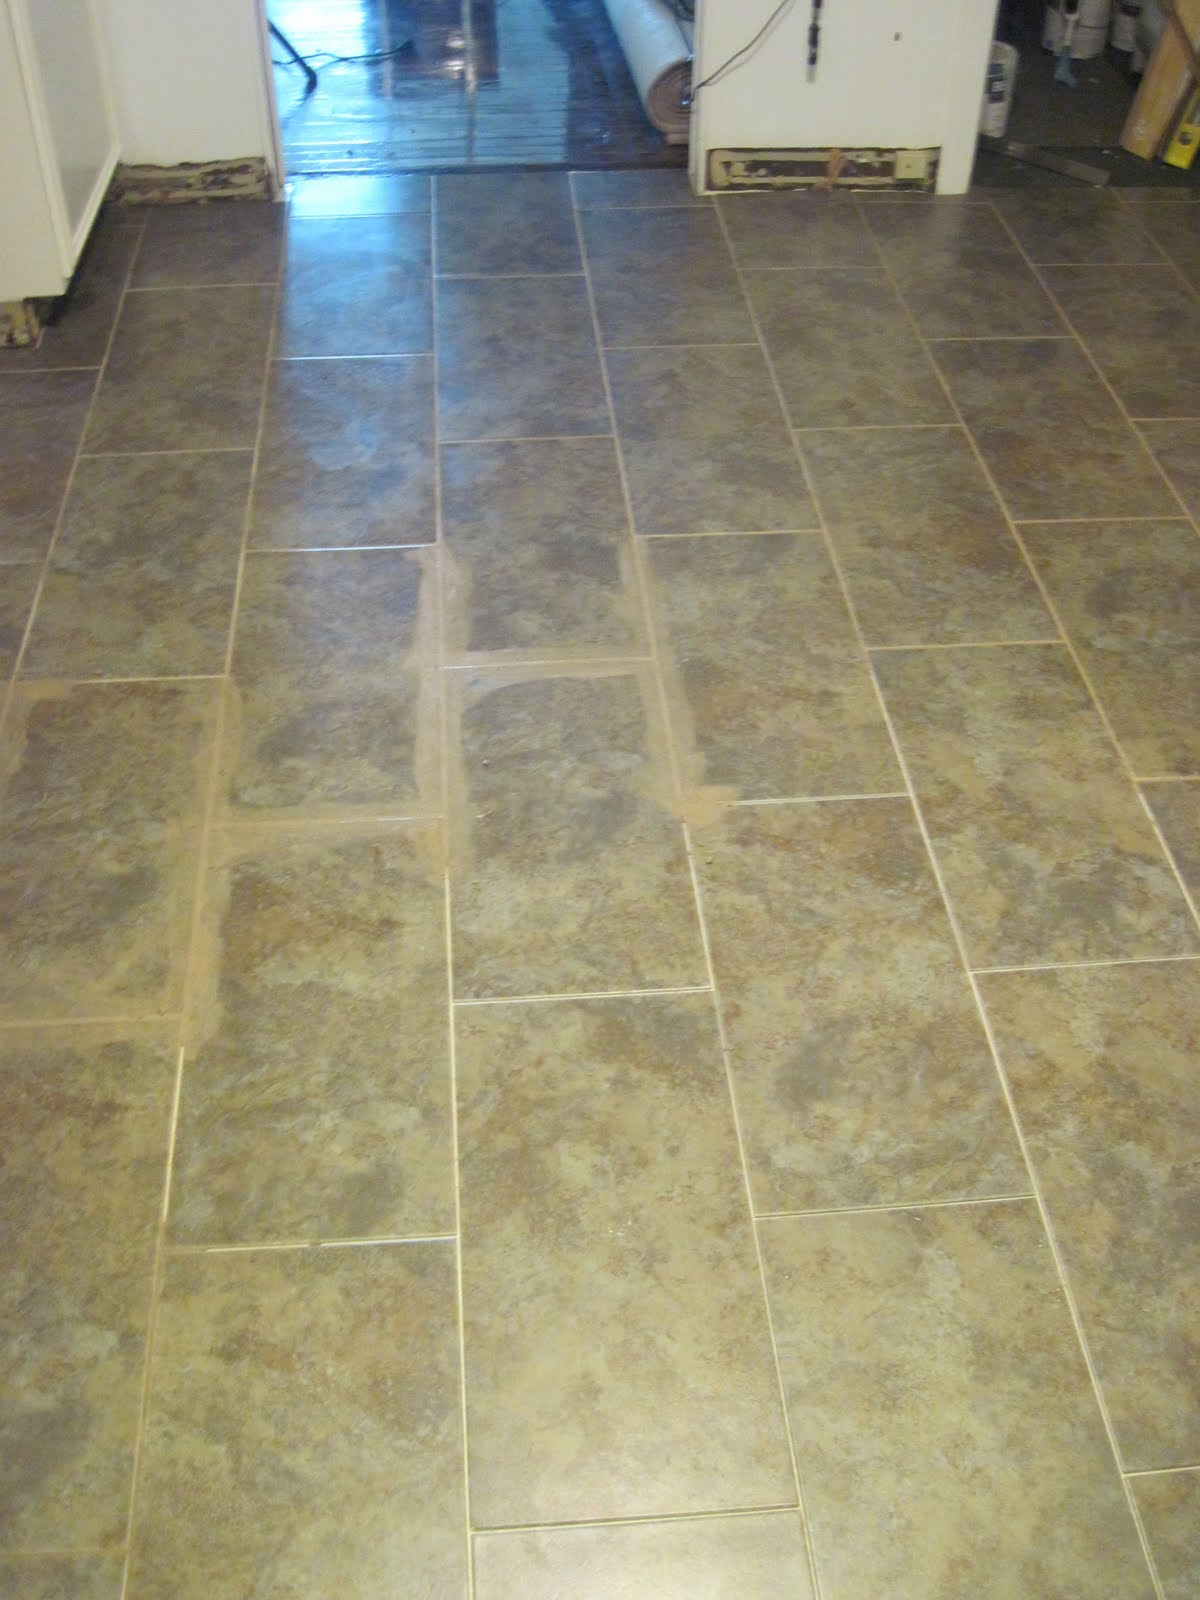 Our old abode kitchen floor groutable vinyl tile grouting the tiles with earth dailygadgetfo Image collections